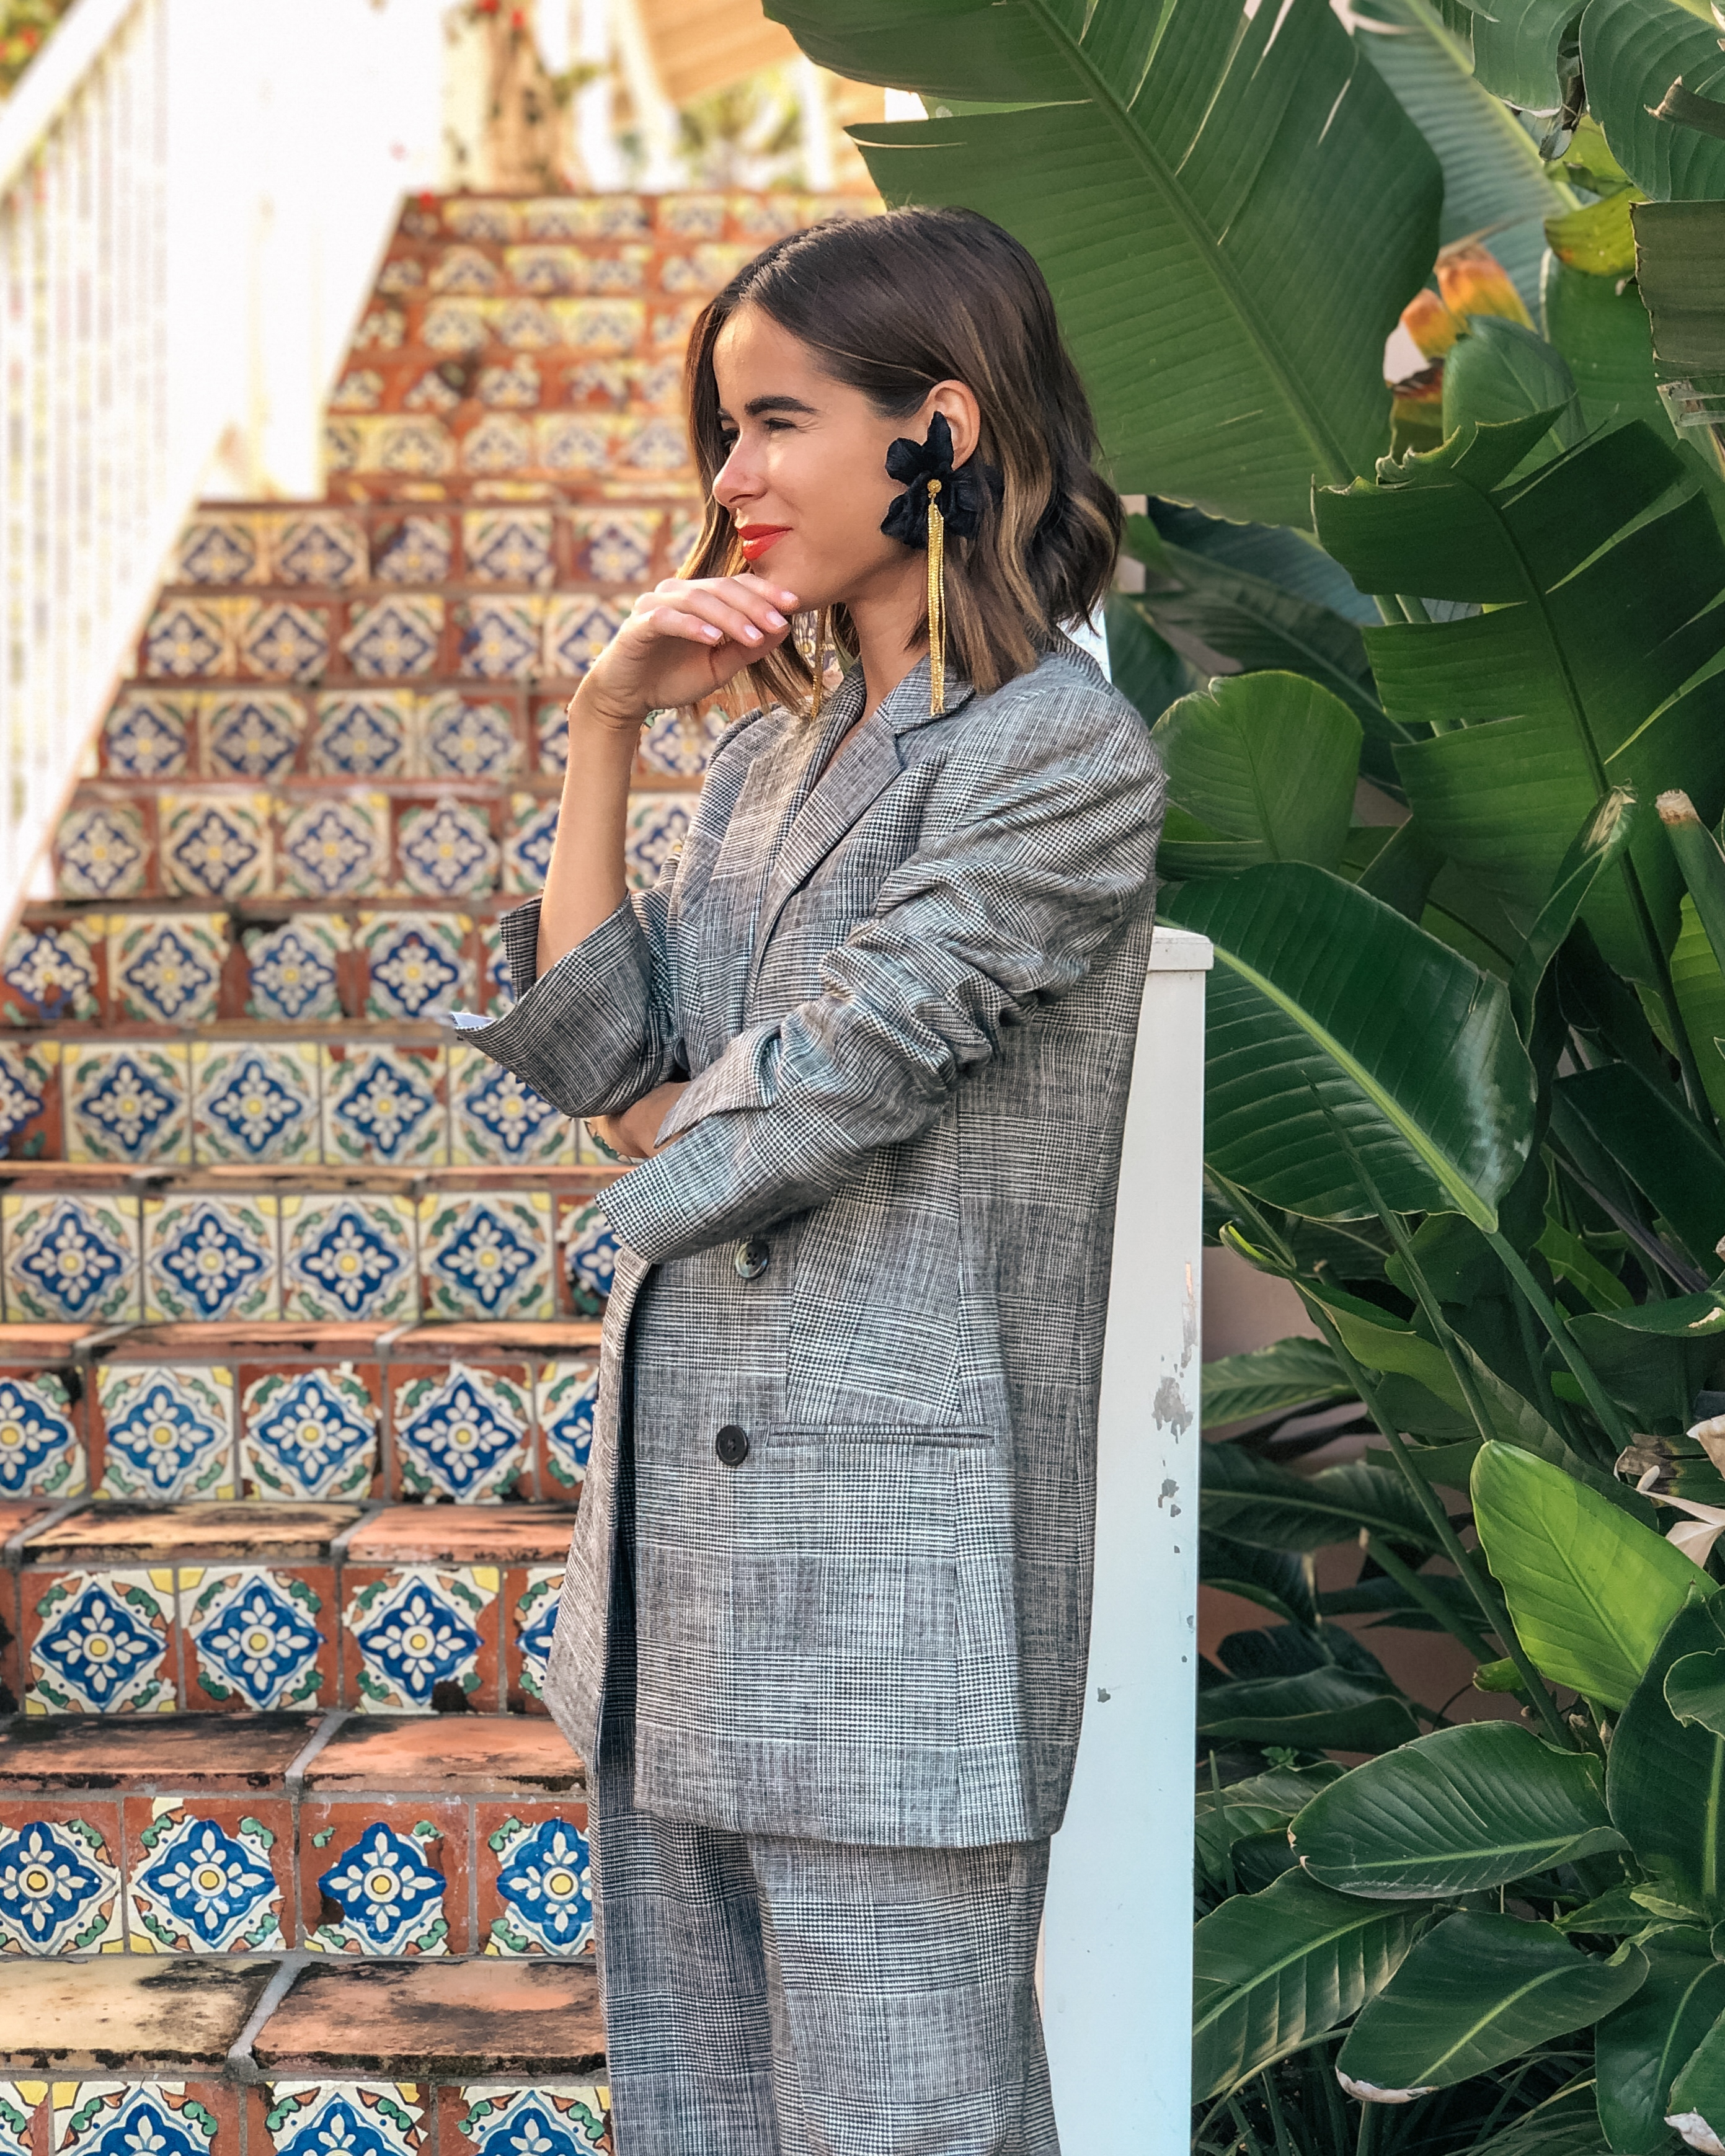 Style Blogger Stephanie Hill wears an ootd featuring Rebecca Taylor blazer and pants on The Style Bungalow